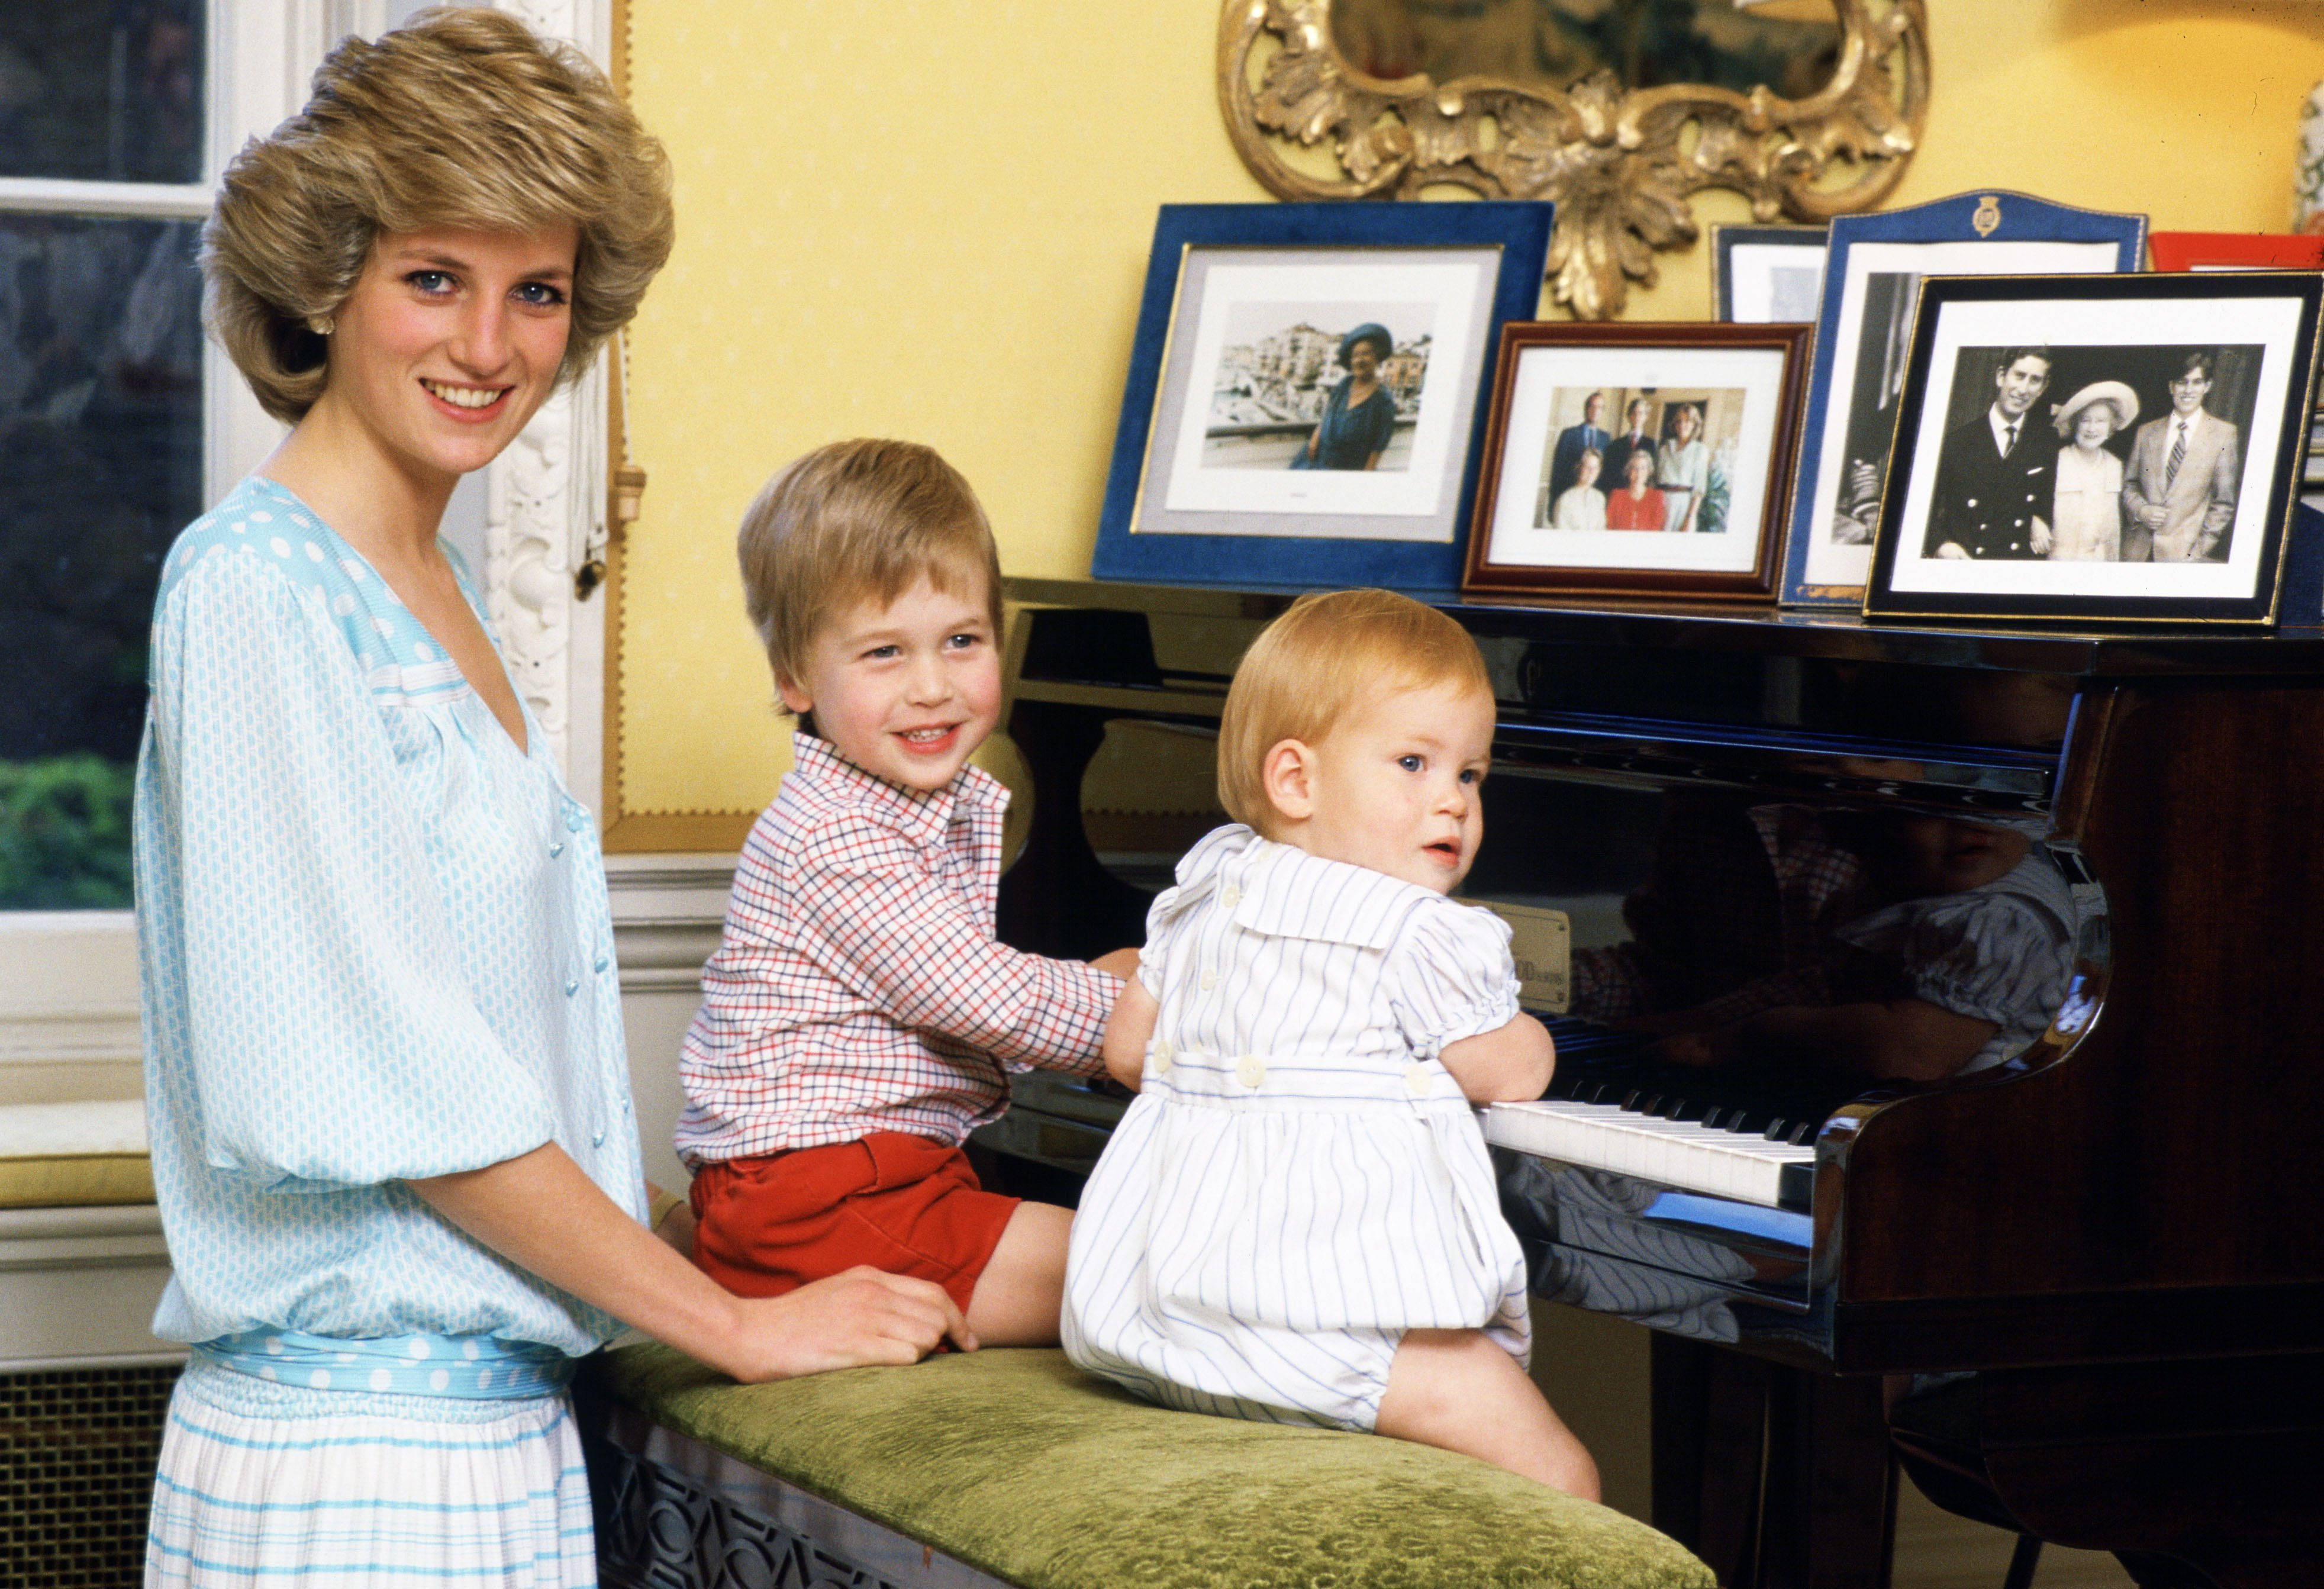 Diana, Princess of Wales with her sons, Prince William and Prince Harry, at the piano in Kensington Palace | Getty Images